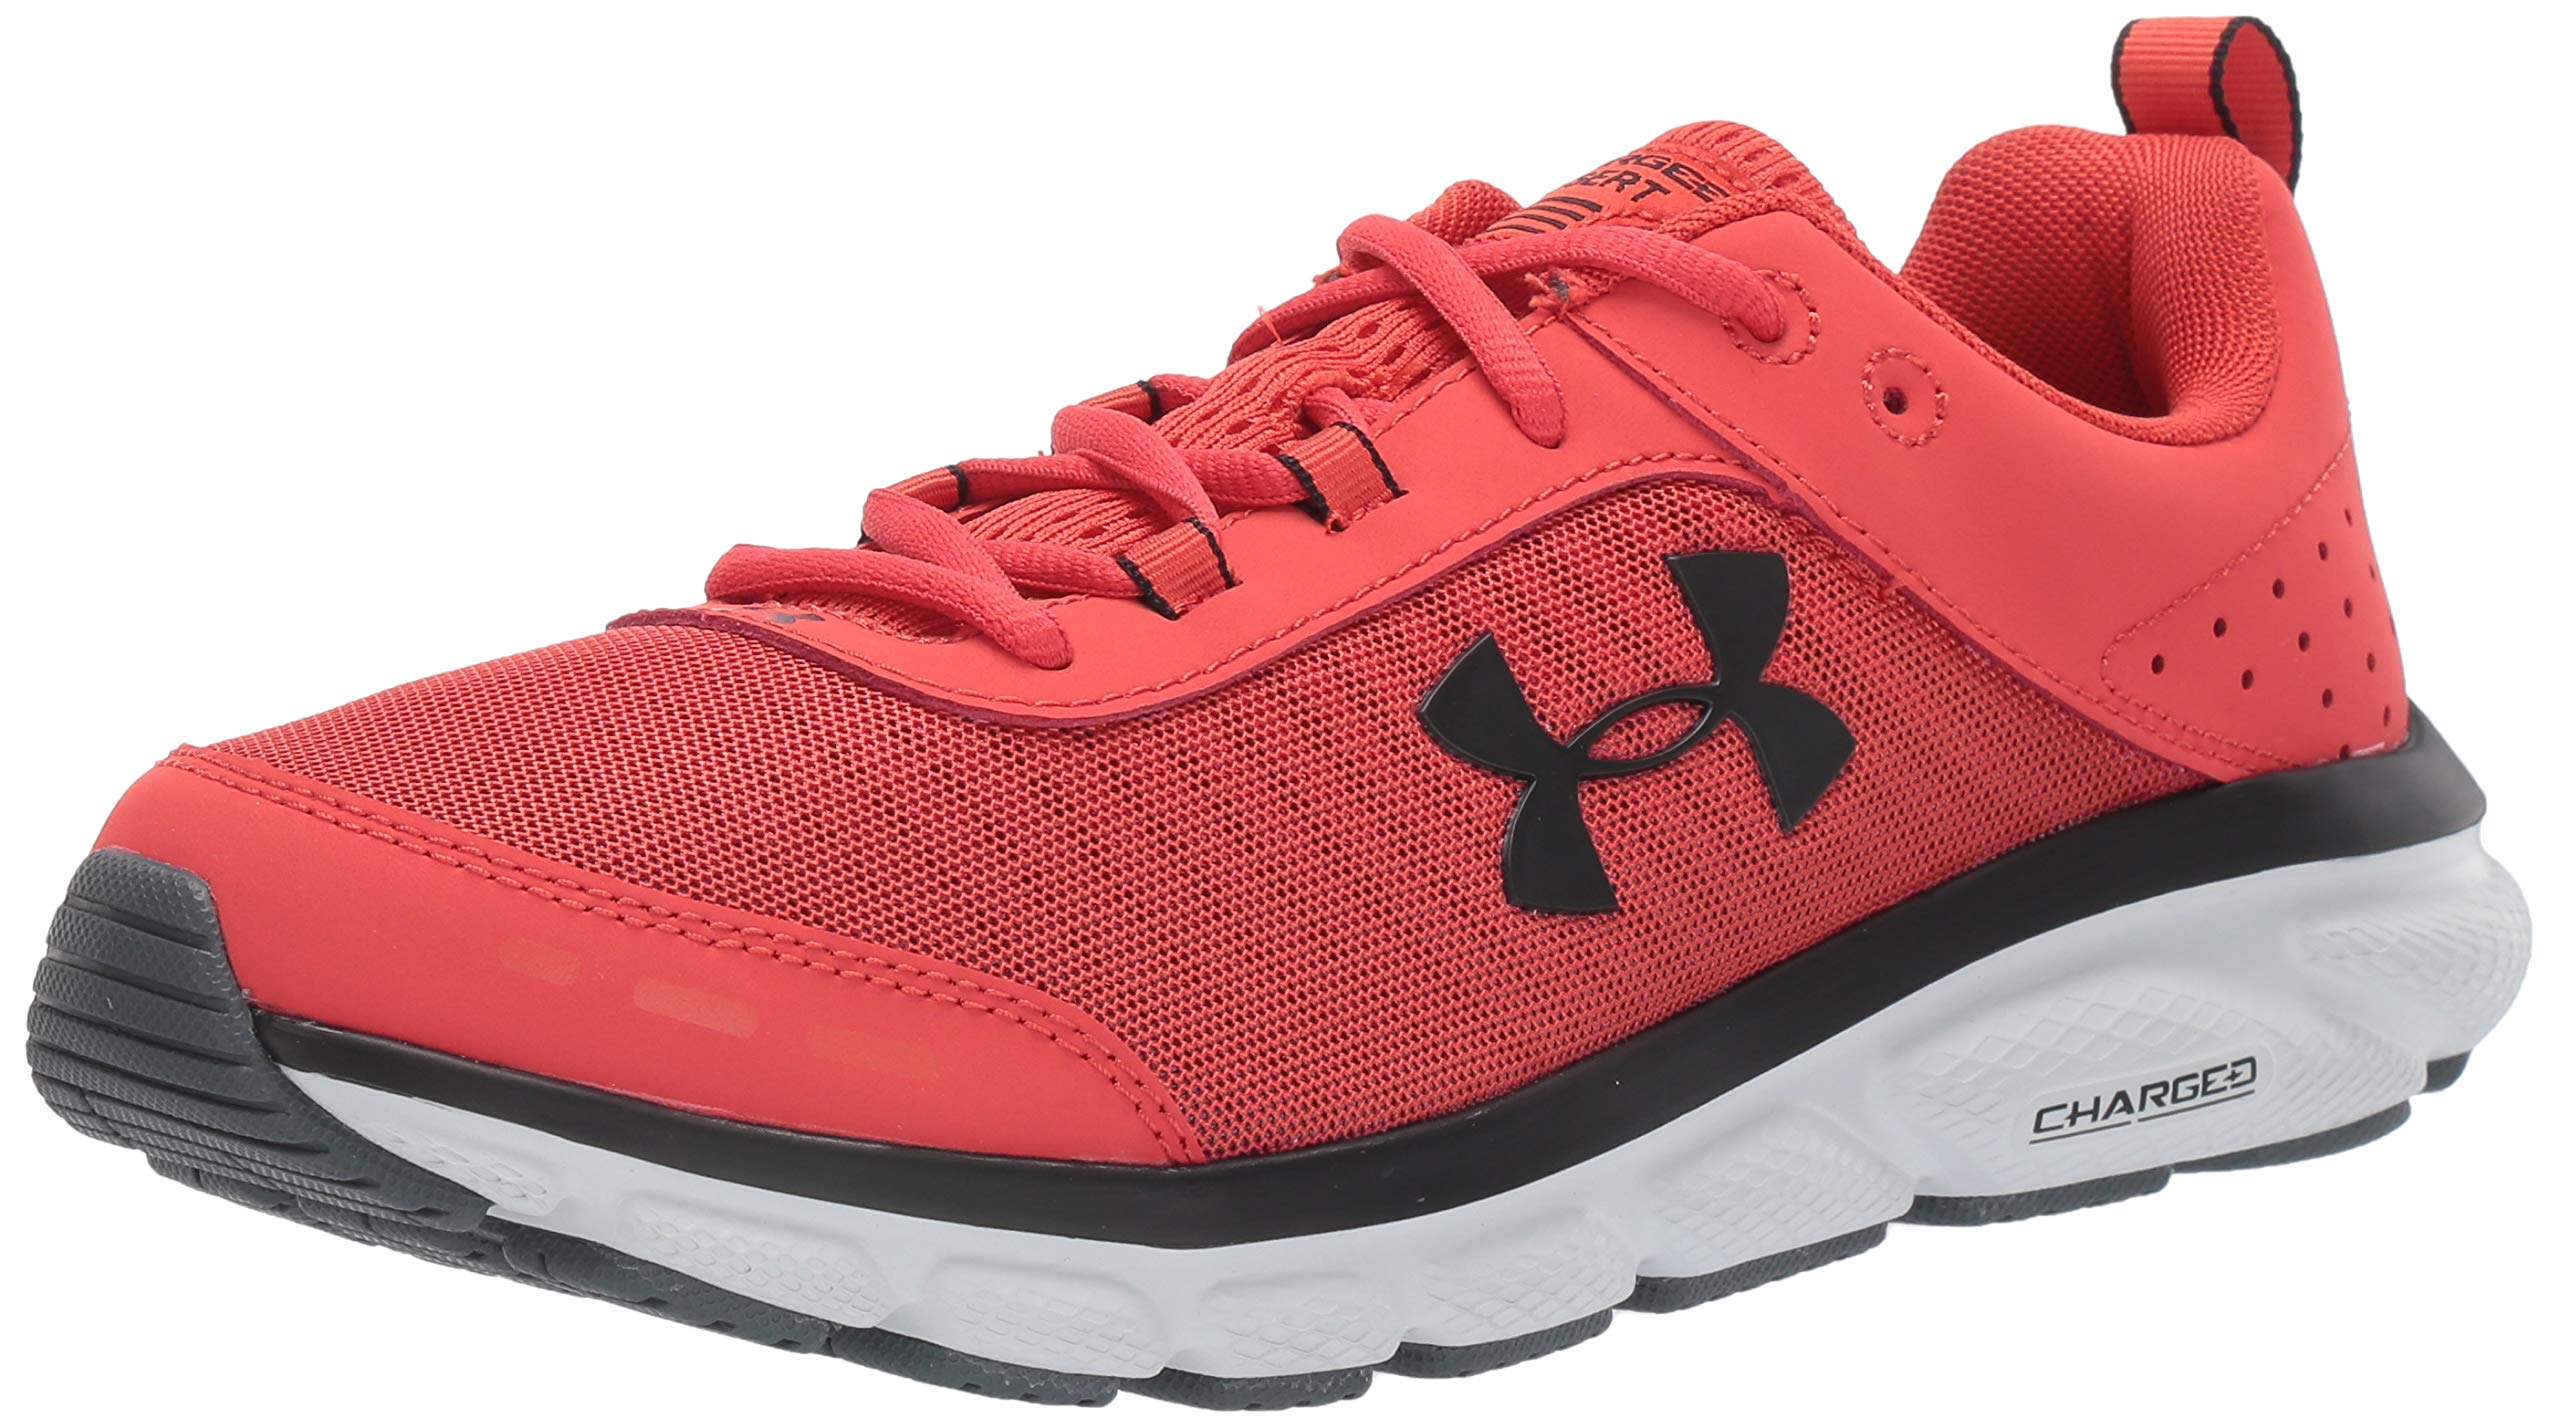 Under Armour Men's Charged Assert 8 Running Shoe, Martian Red (601)/Gray Flux, 10 by Under Armour